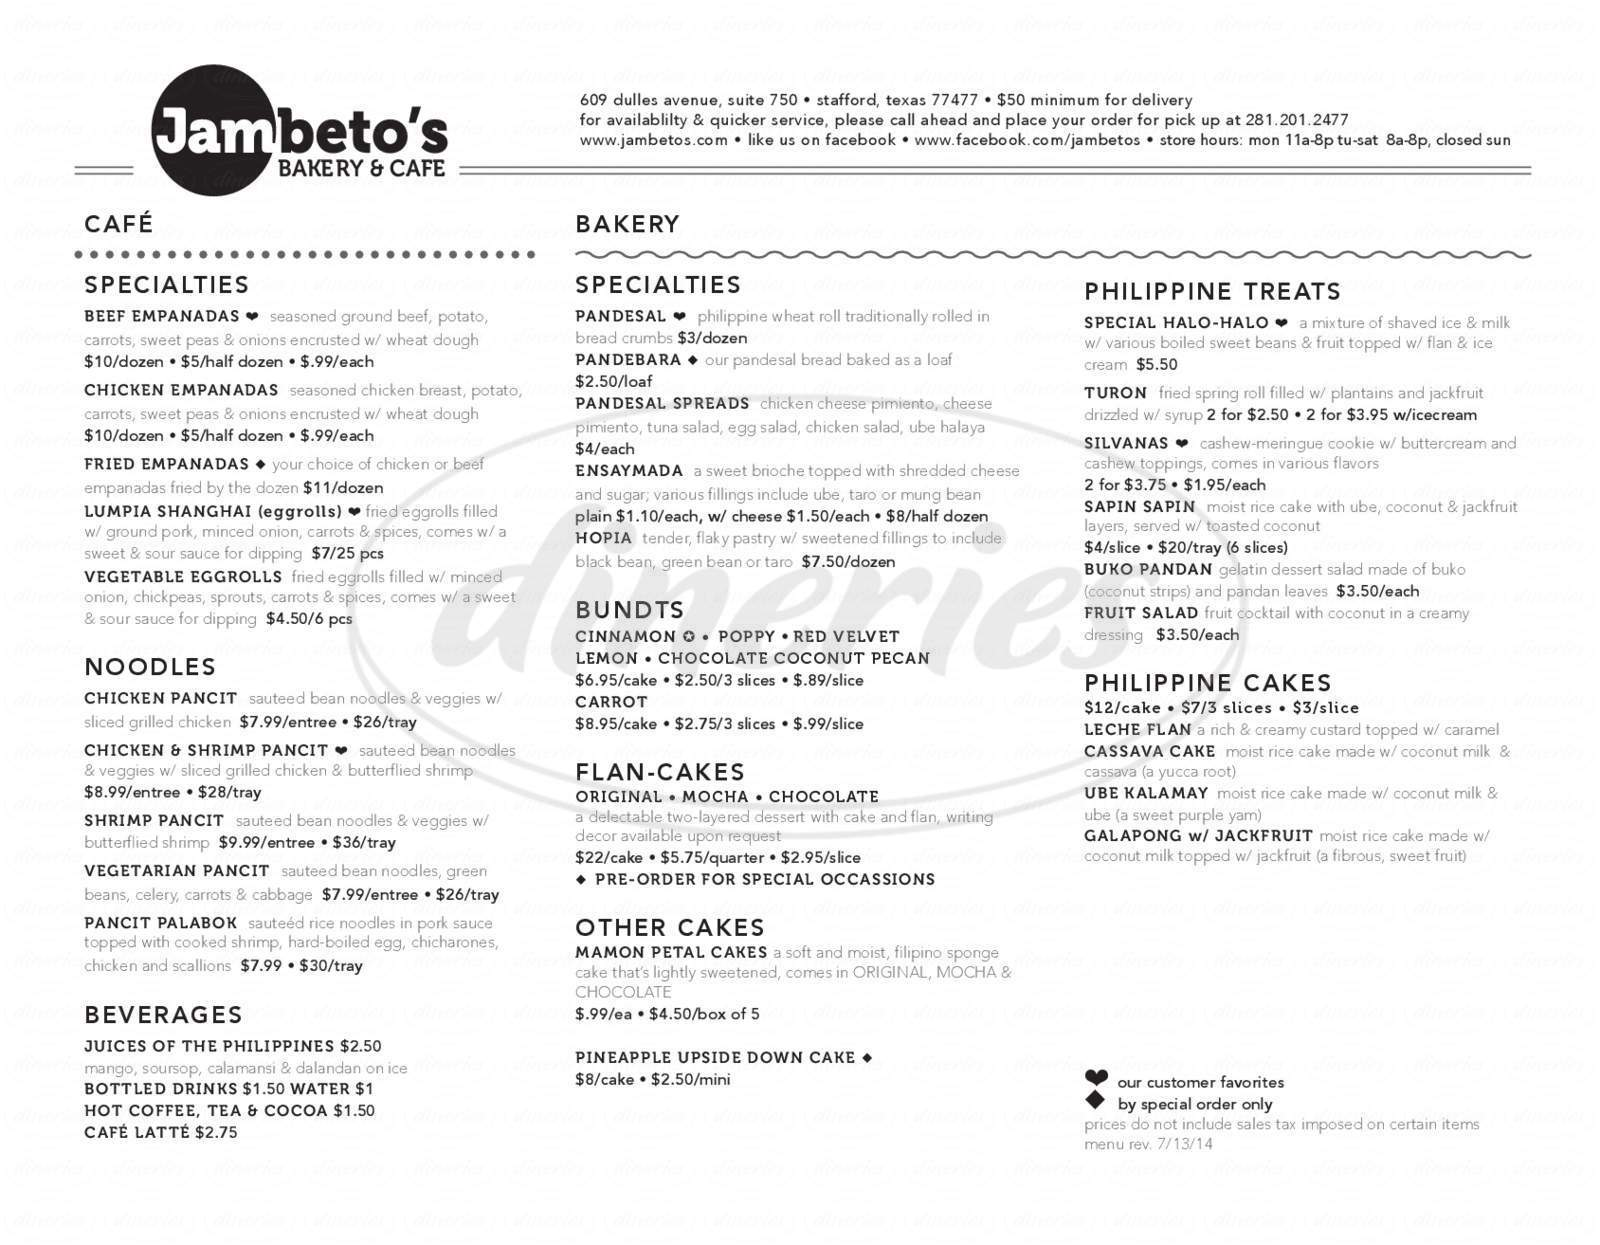 menu for Jambeto's Bakery & Café